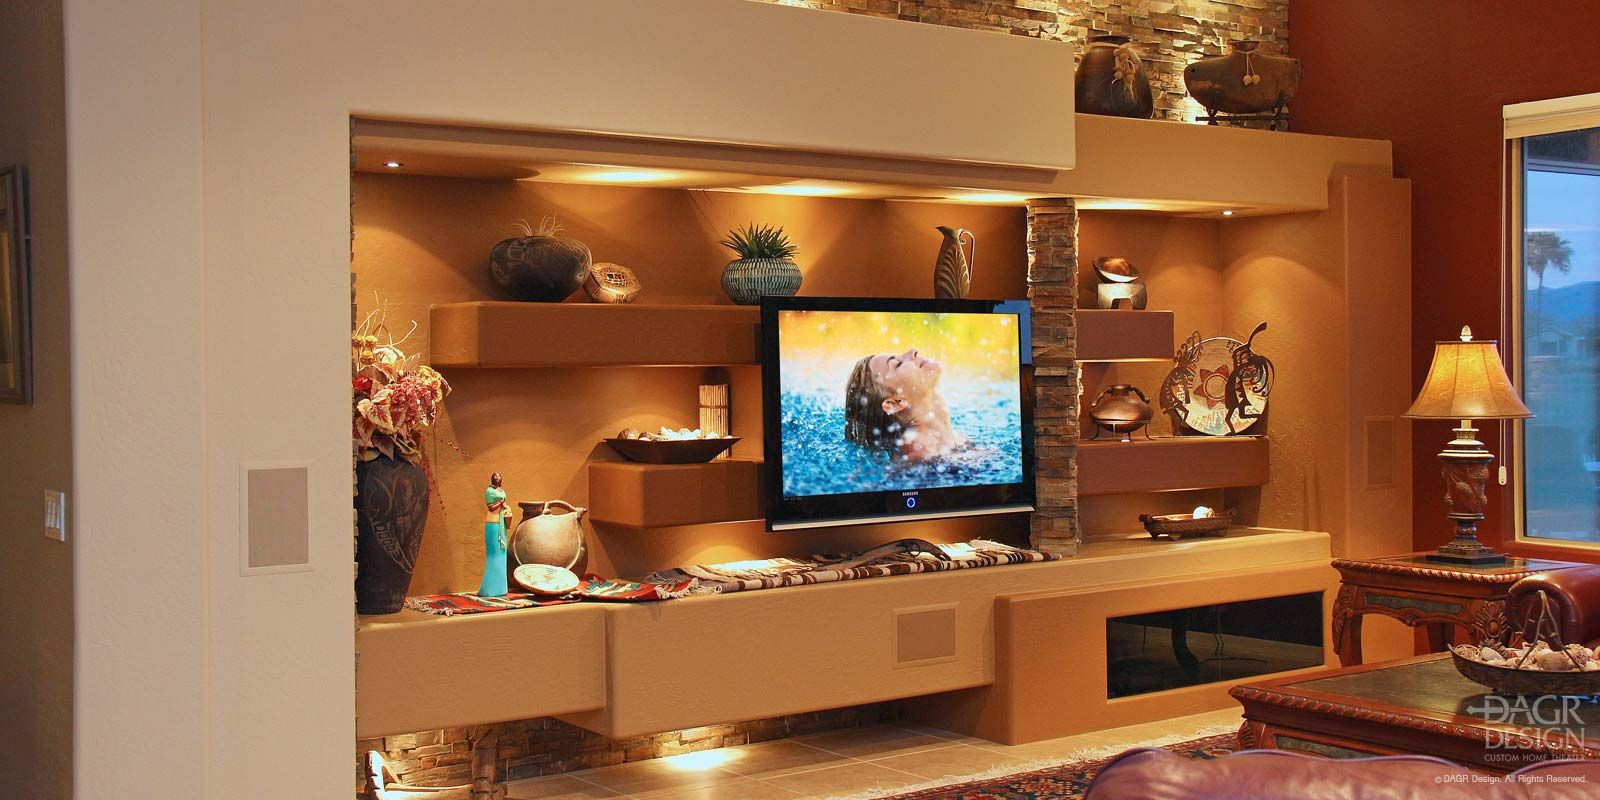 High end custom designed home media wall with floating panel LCD TV mount, natural stacked stone accents, custom shelving with accent lighting custom designed and installed by DAGR Design